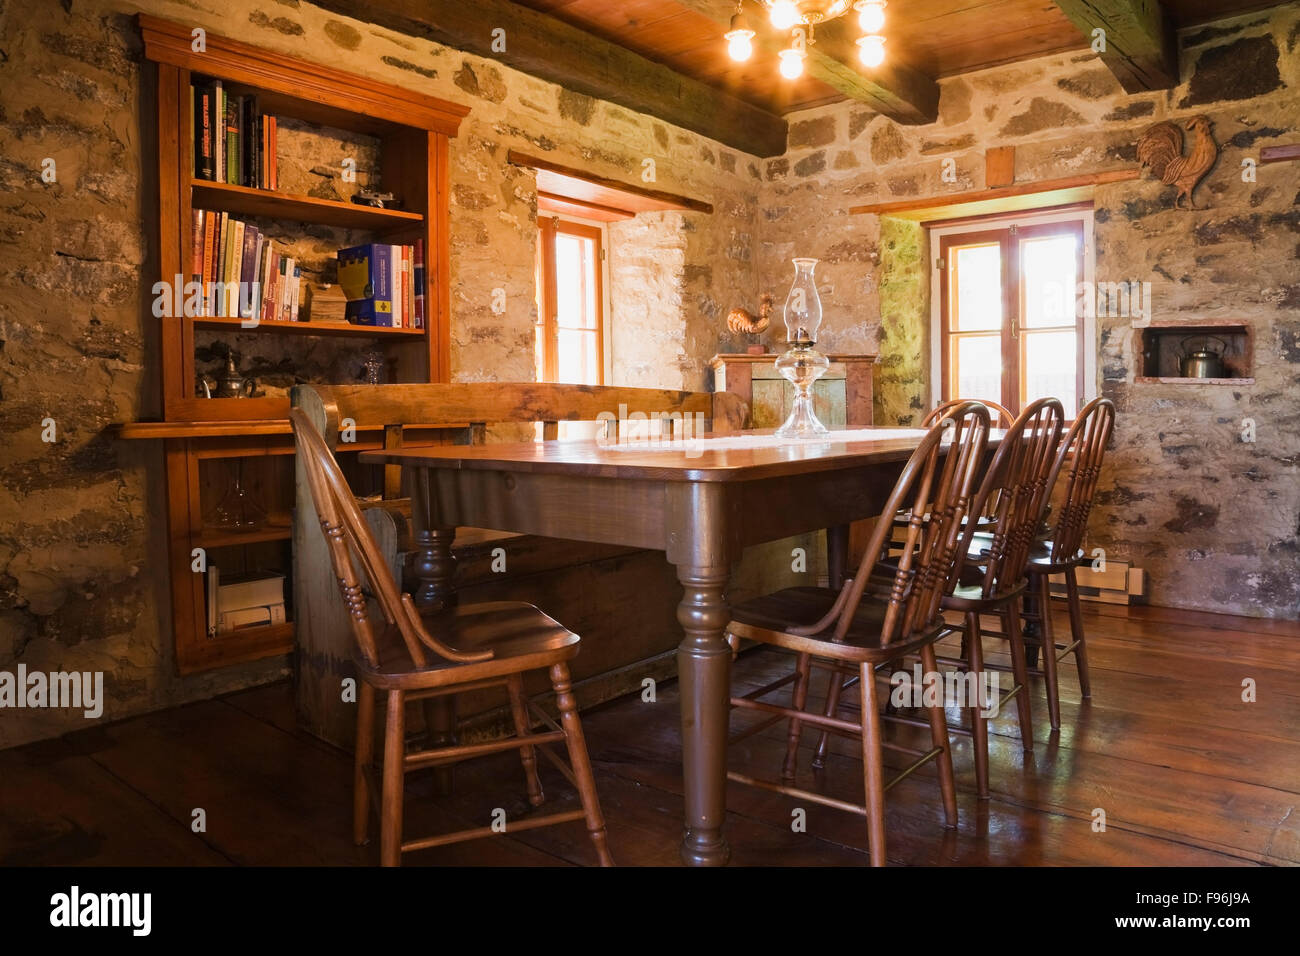 Antique Wooden Dining Table And Chairs In The Dining Room Inside An Old  Circa 1850 Cottage Style Fieldstone Home, Quebec, Canada